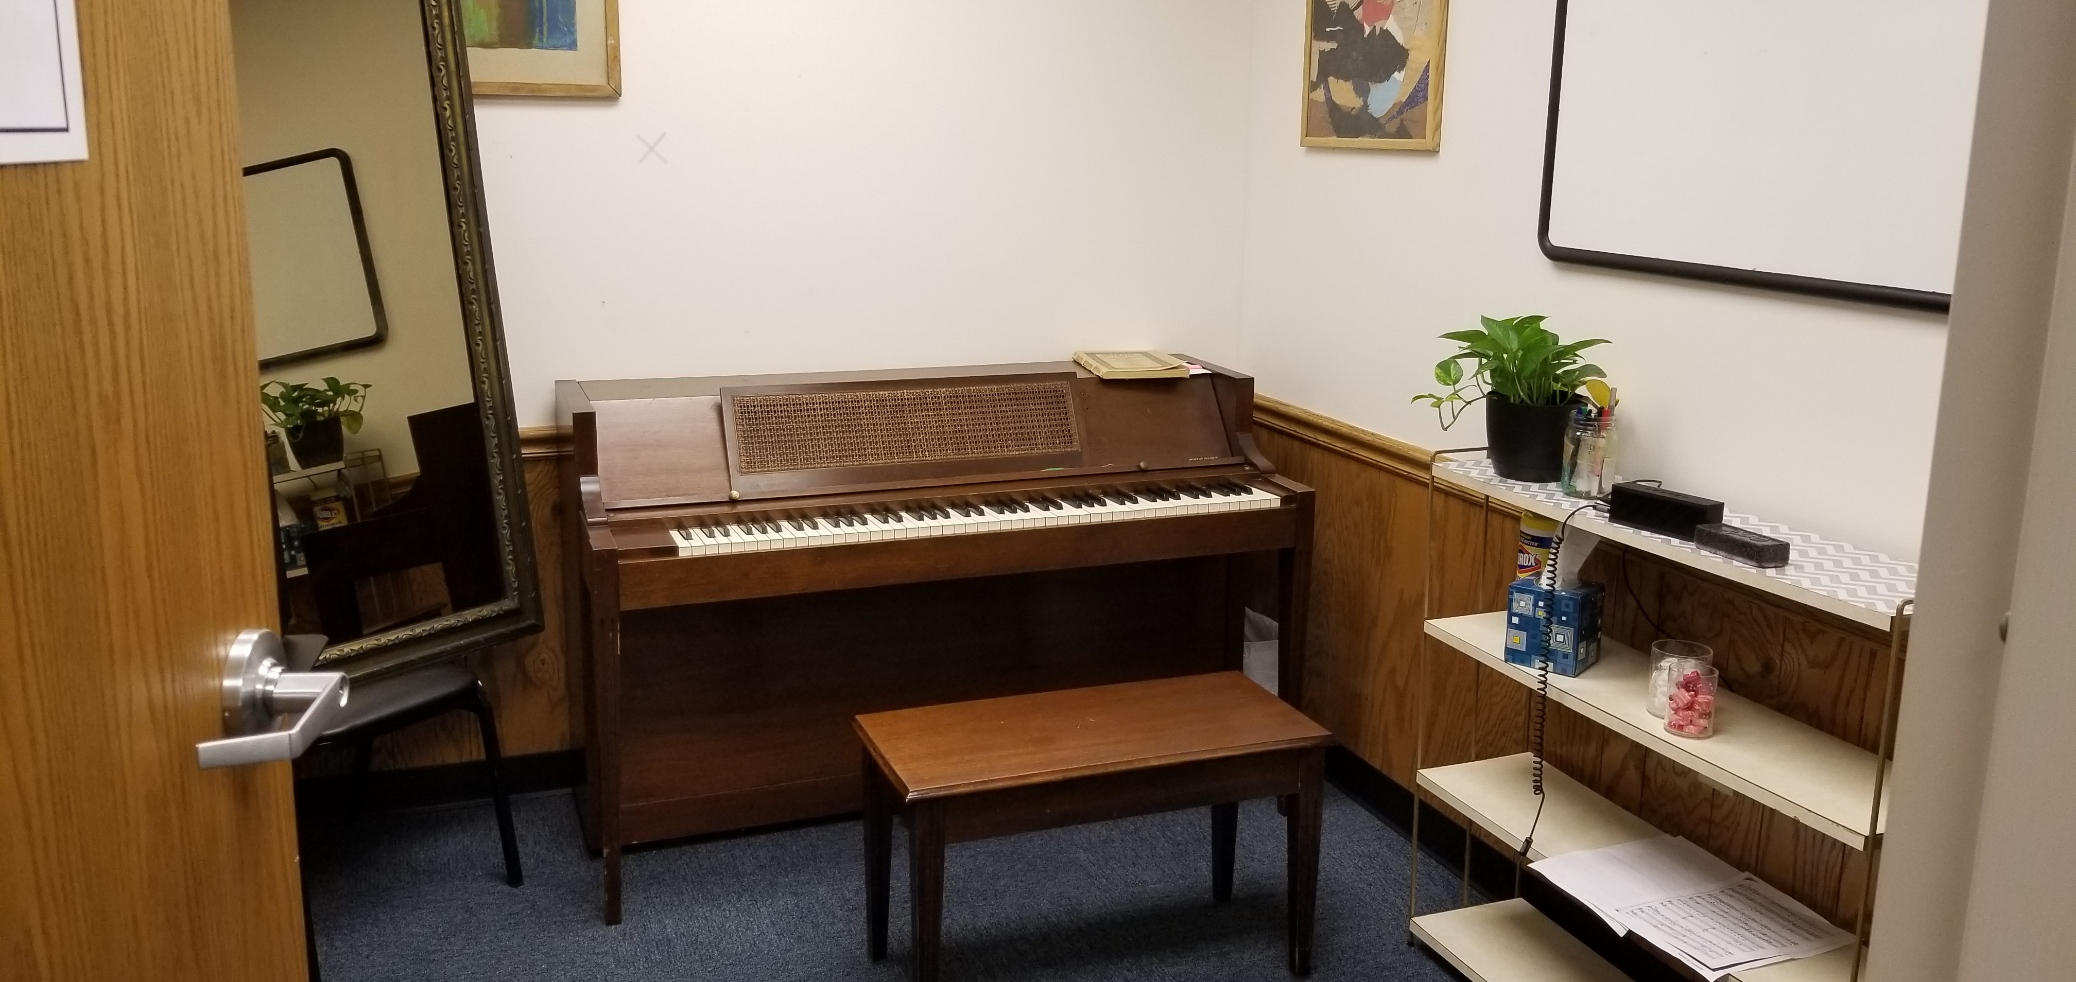 Small Enclosed Rehearsal Space or Practice Studio